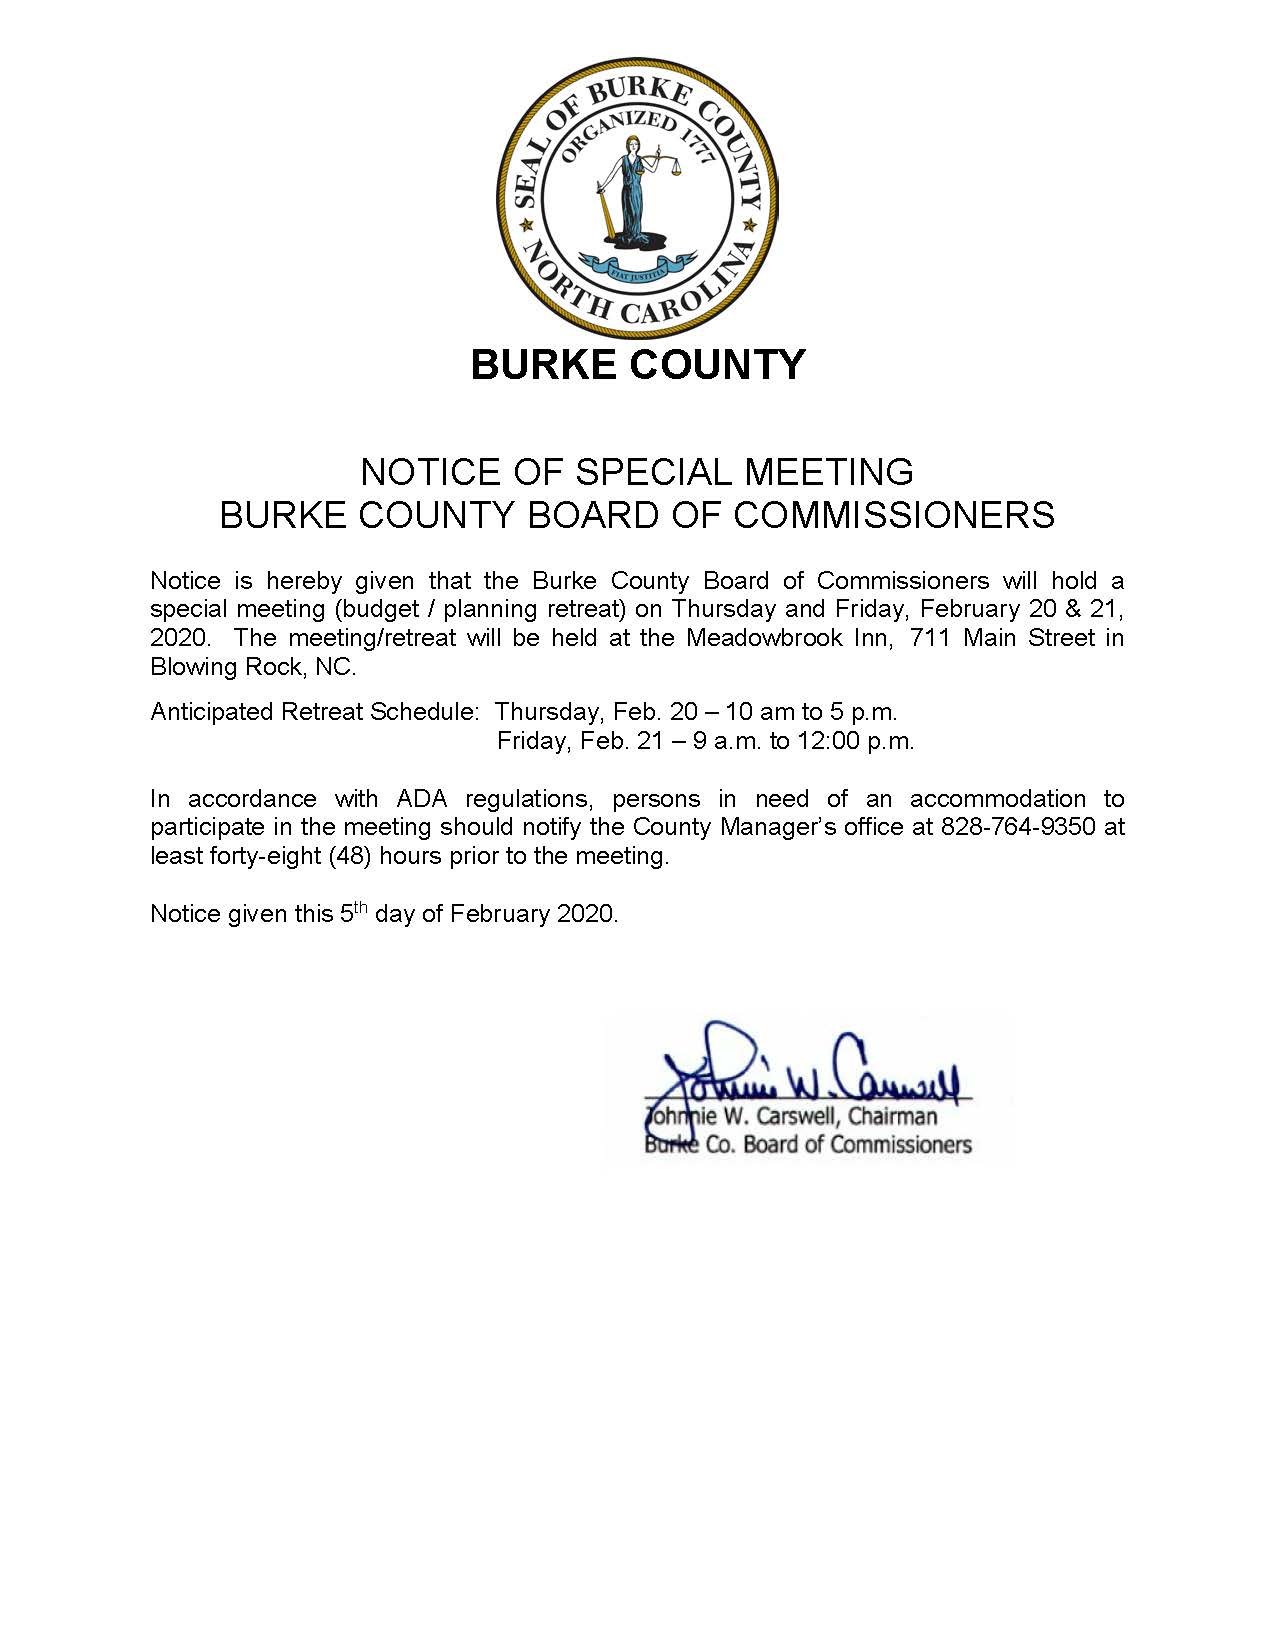 2020 02 20-21 Special Meeting Notice - Budget Planning Retreat Notice